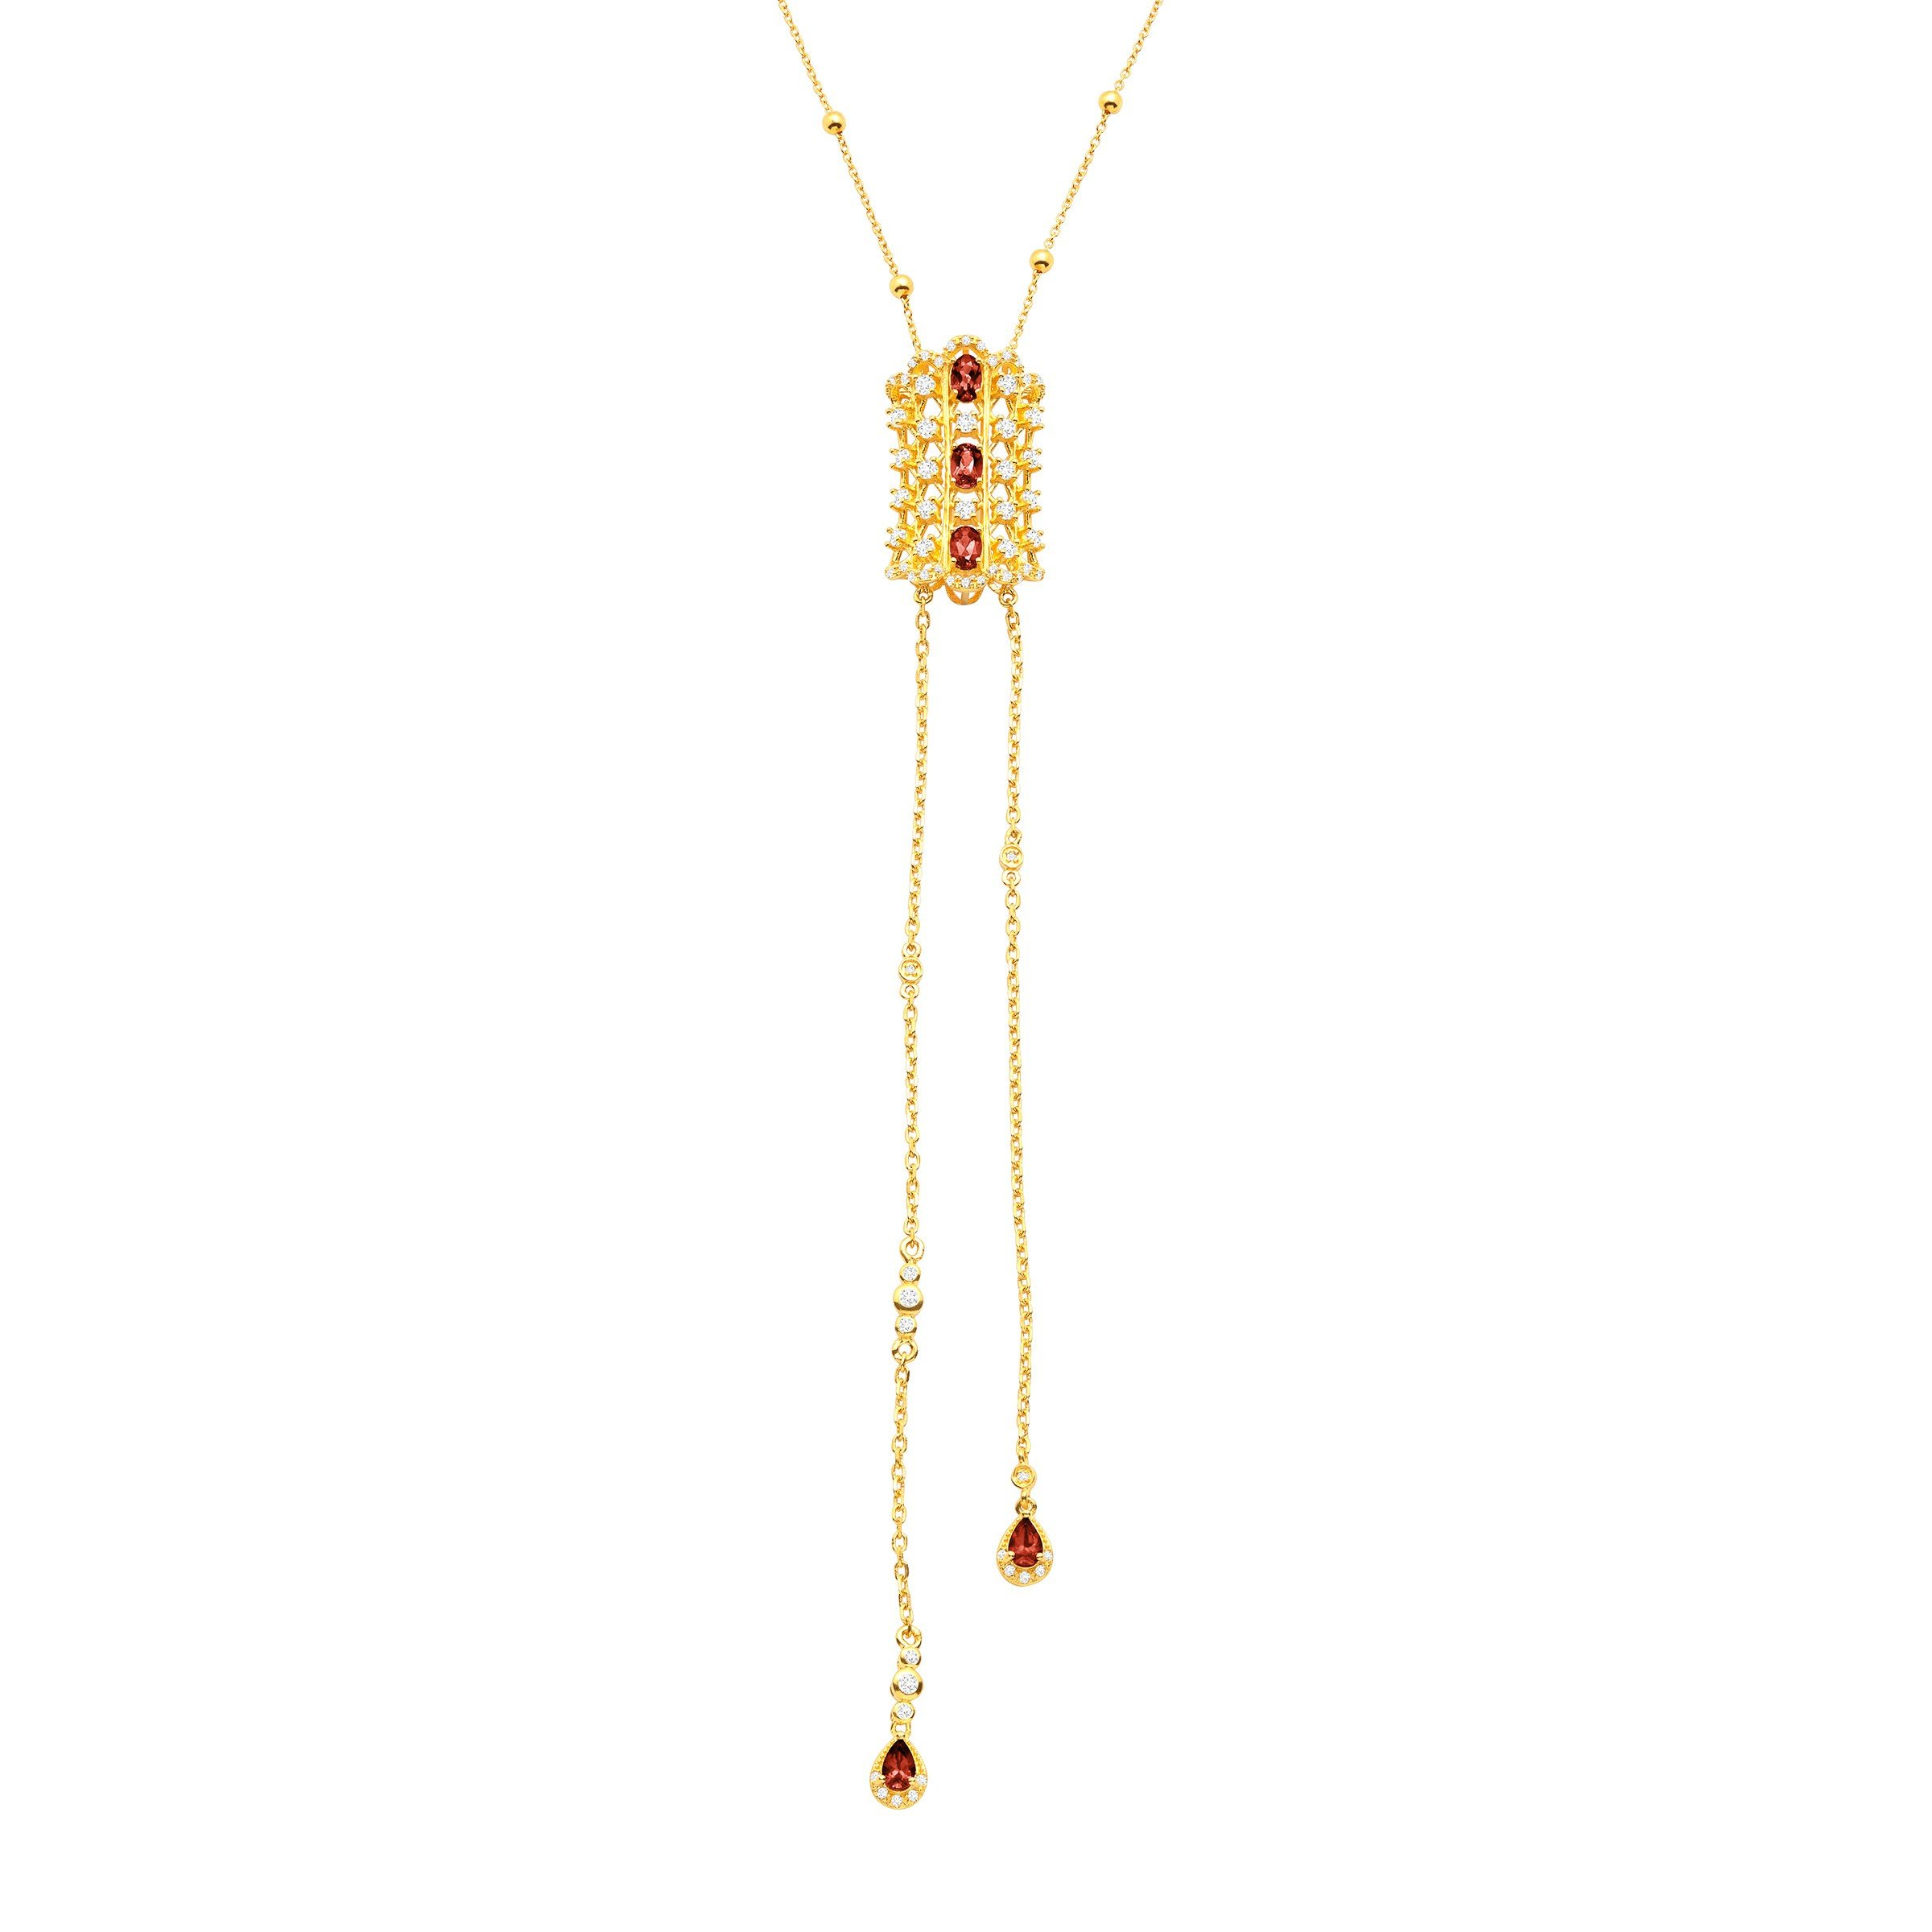 Cristina Sabatini Natural Rhodochrosite & White Topaz Lumiere Necklace in 18K Gold-Plated Sterling Silver